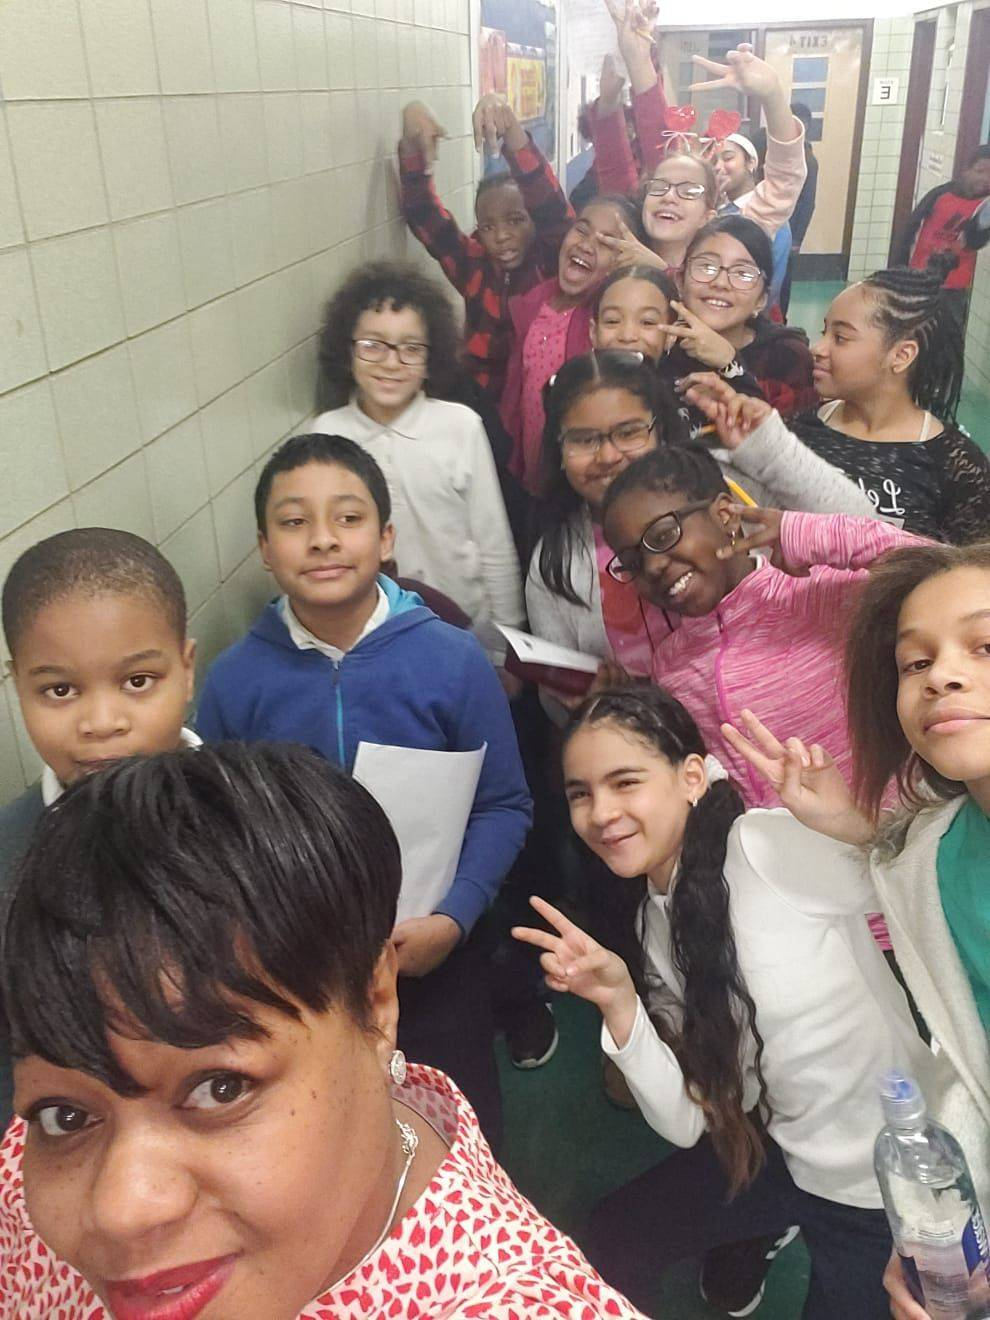 Ms. Nealy and her students pose playfully in the hallway for a class selfie.